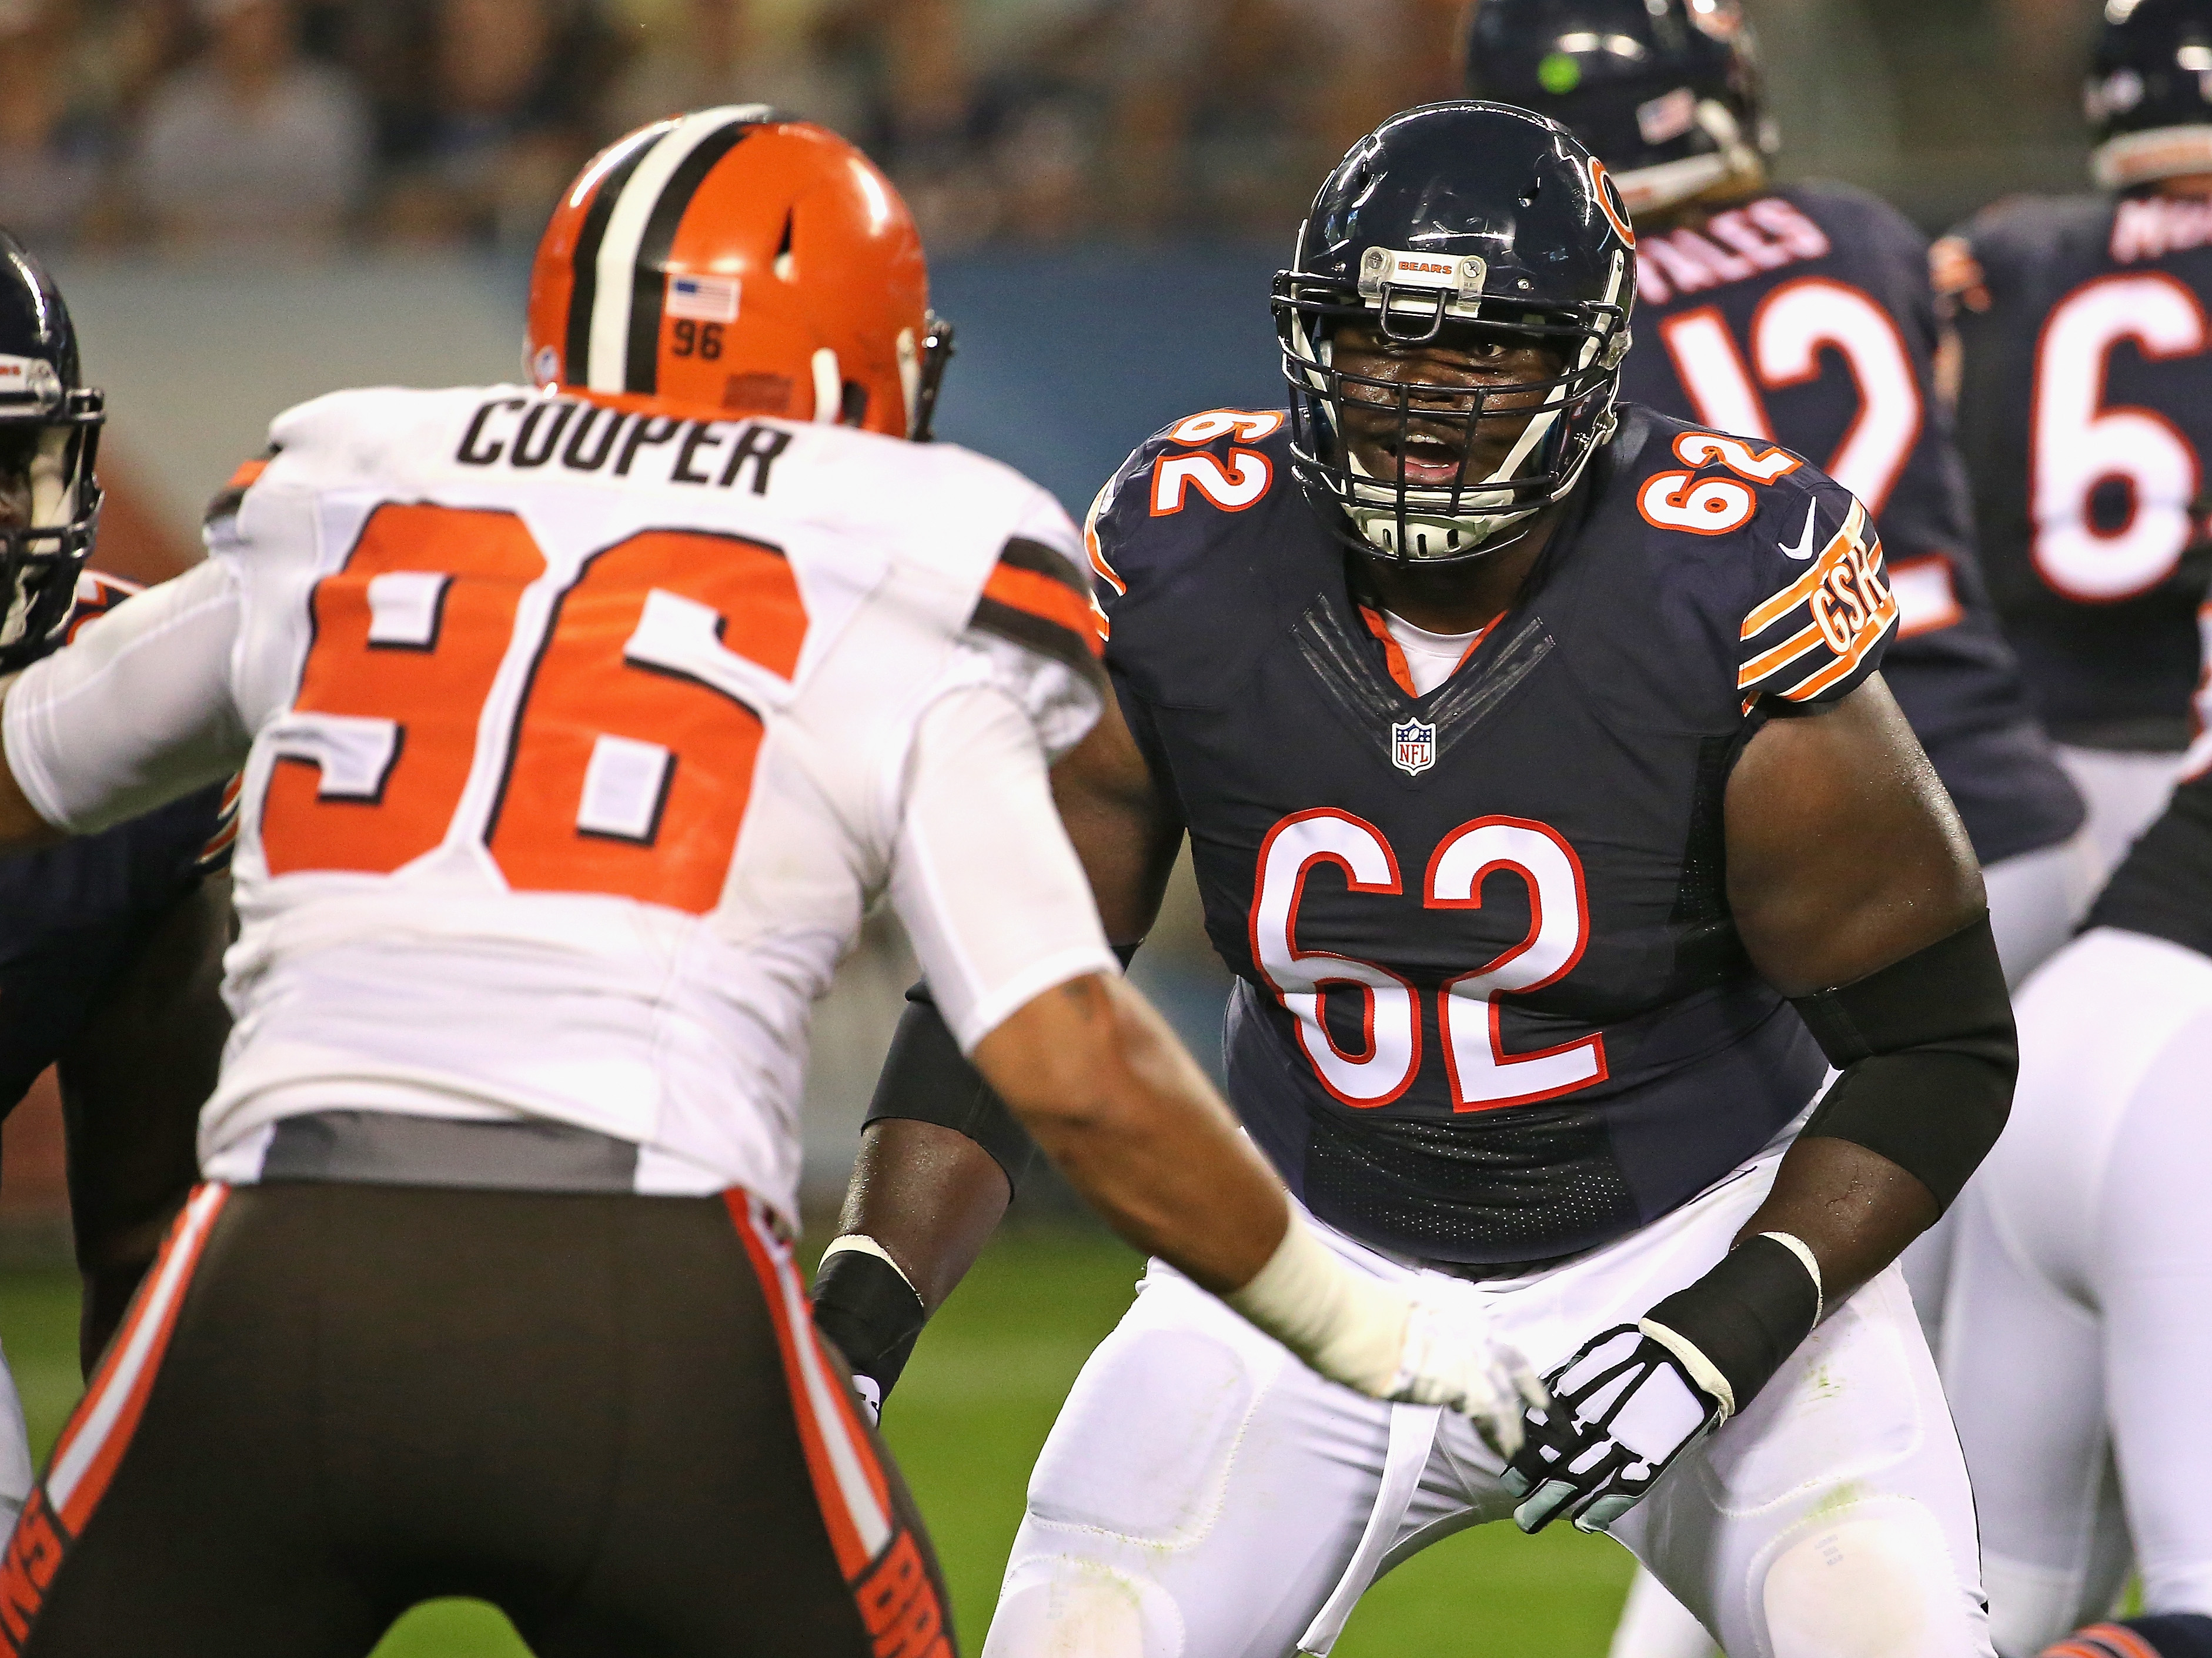 Offensive lineman Vlad Ducasse (62) has played with four teams in his NFL career. (Getty Images)